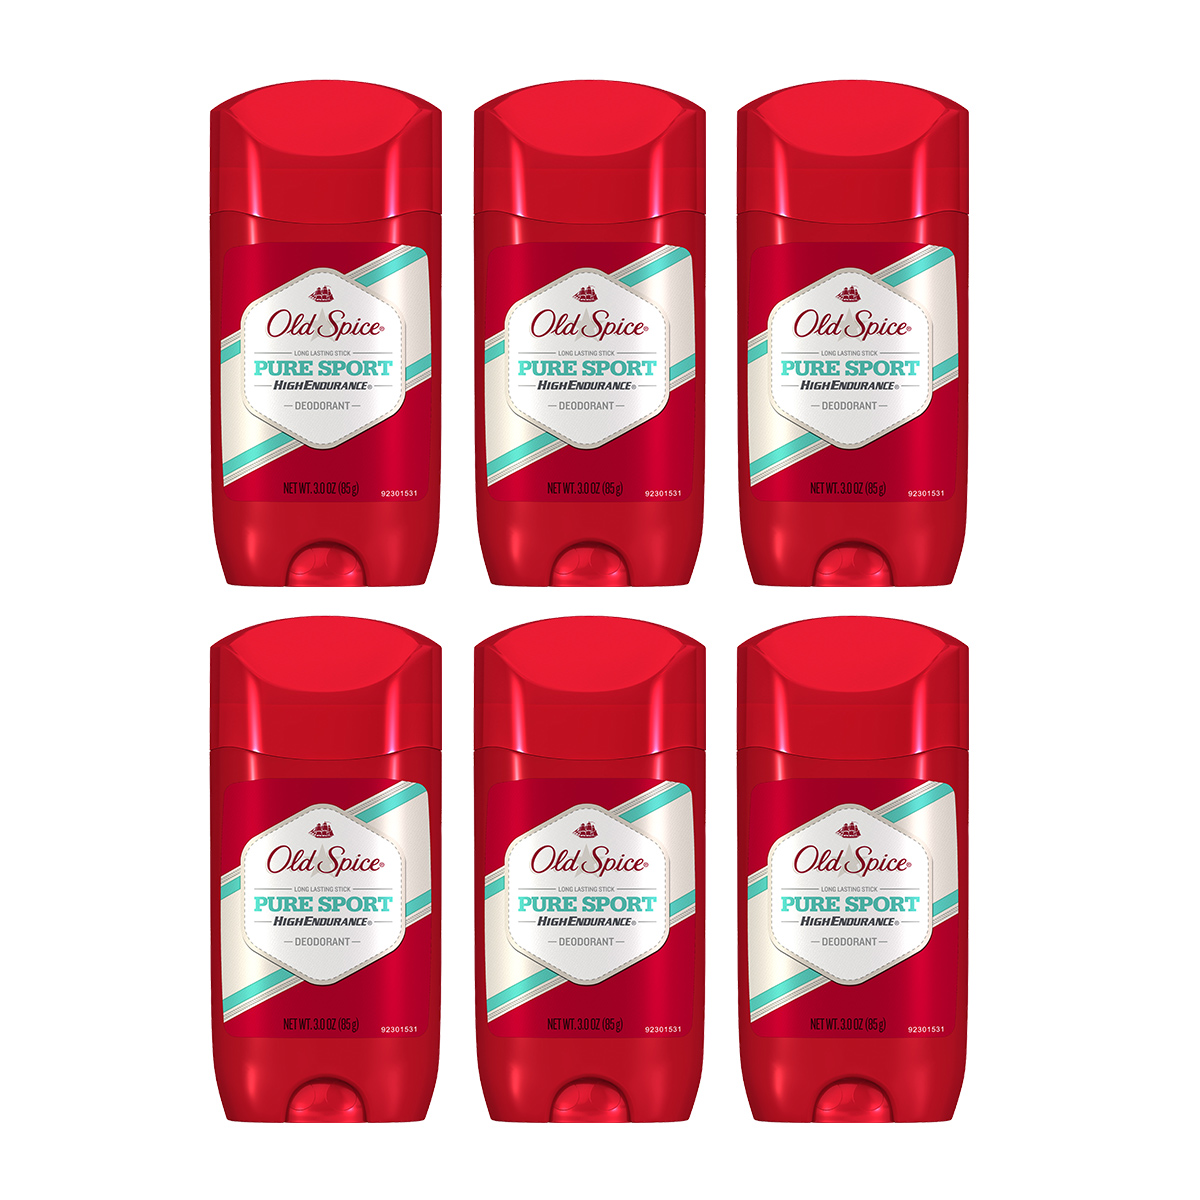 (6 Count) Old Spice High Endurance Pure Sport Antiperspirant and Deodorant 3 oz